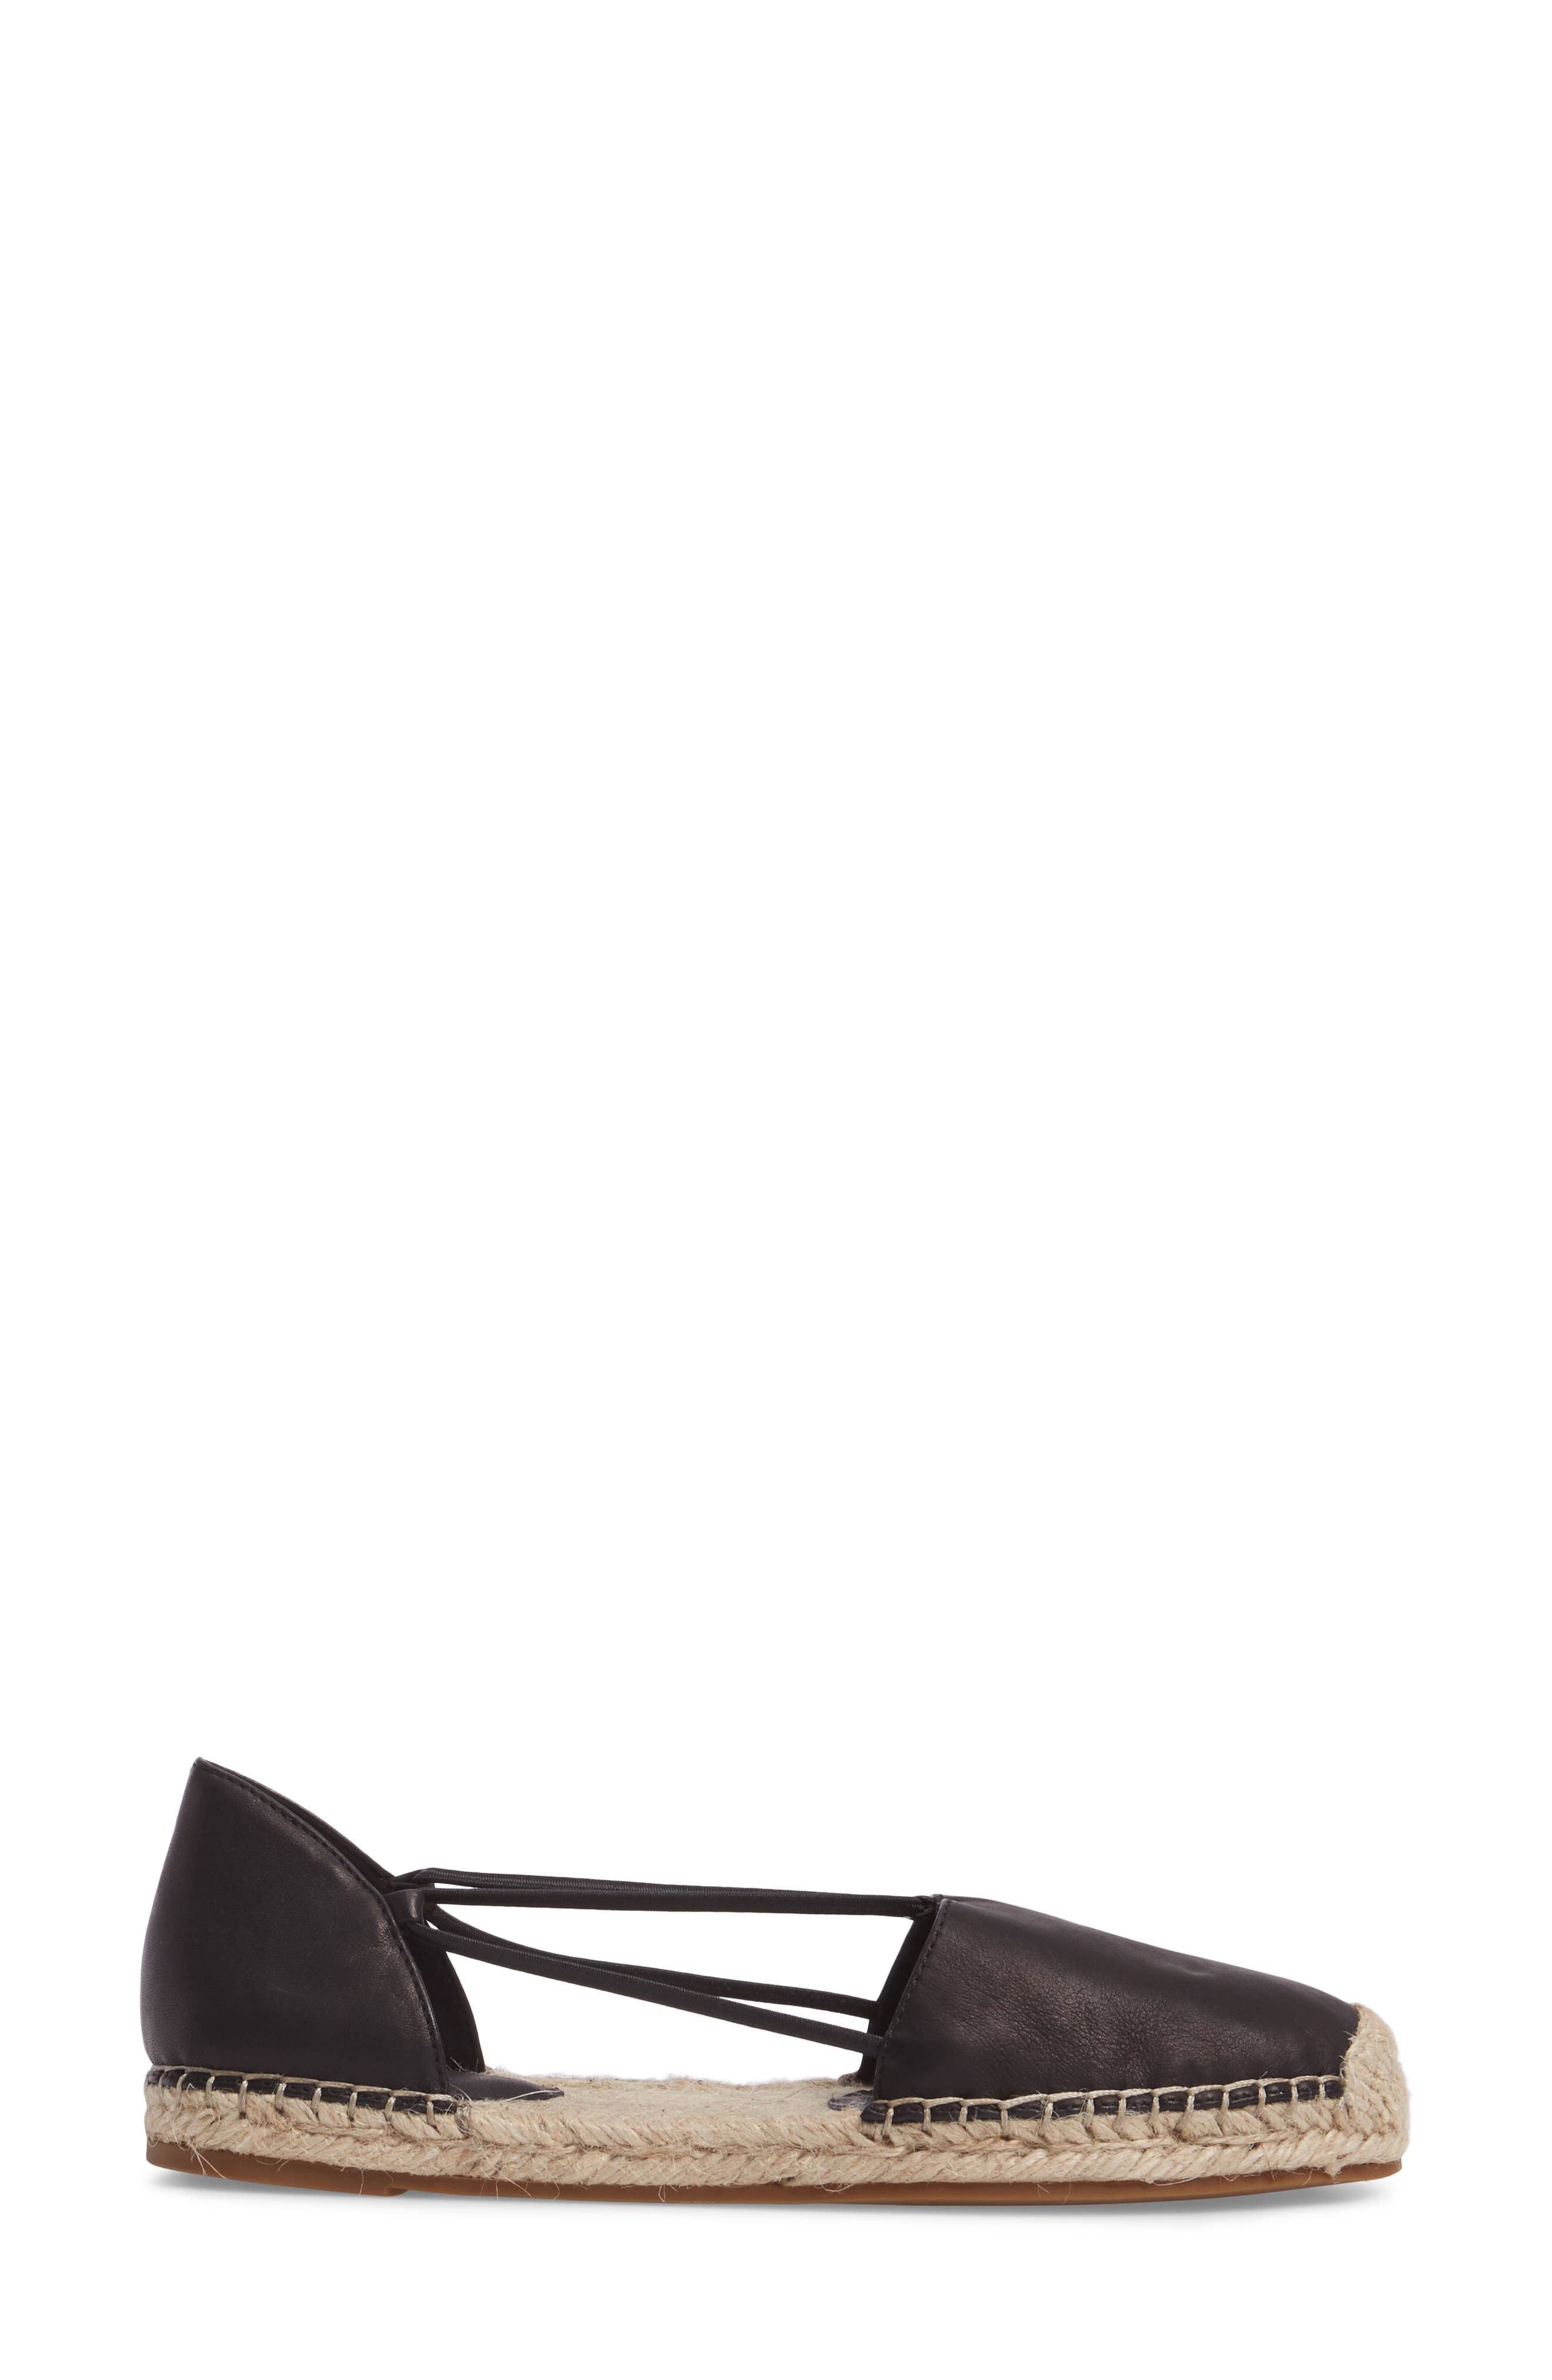 EILEEN FISHER, Lee Espadrille Flat, Alternate thumbnail 3, color, BLACK WASHED LEATHER